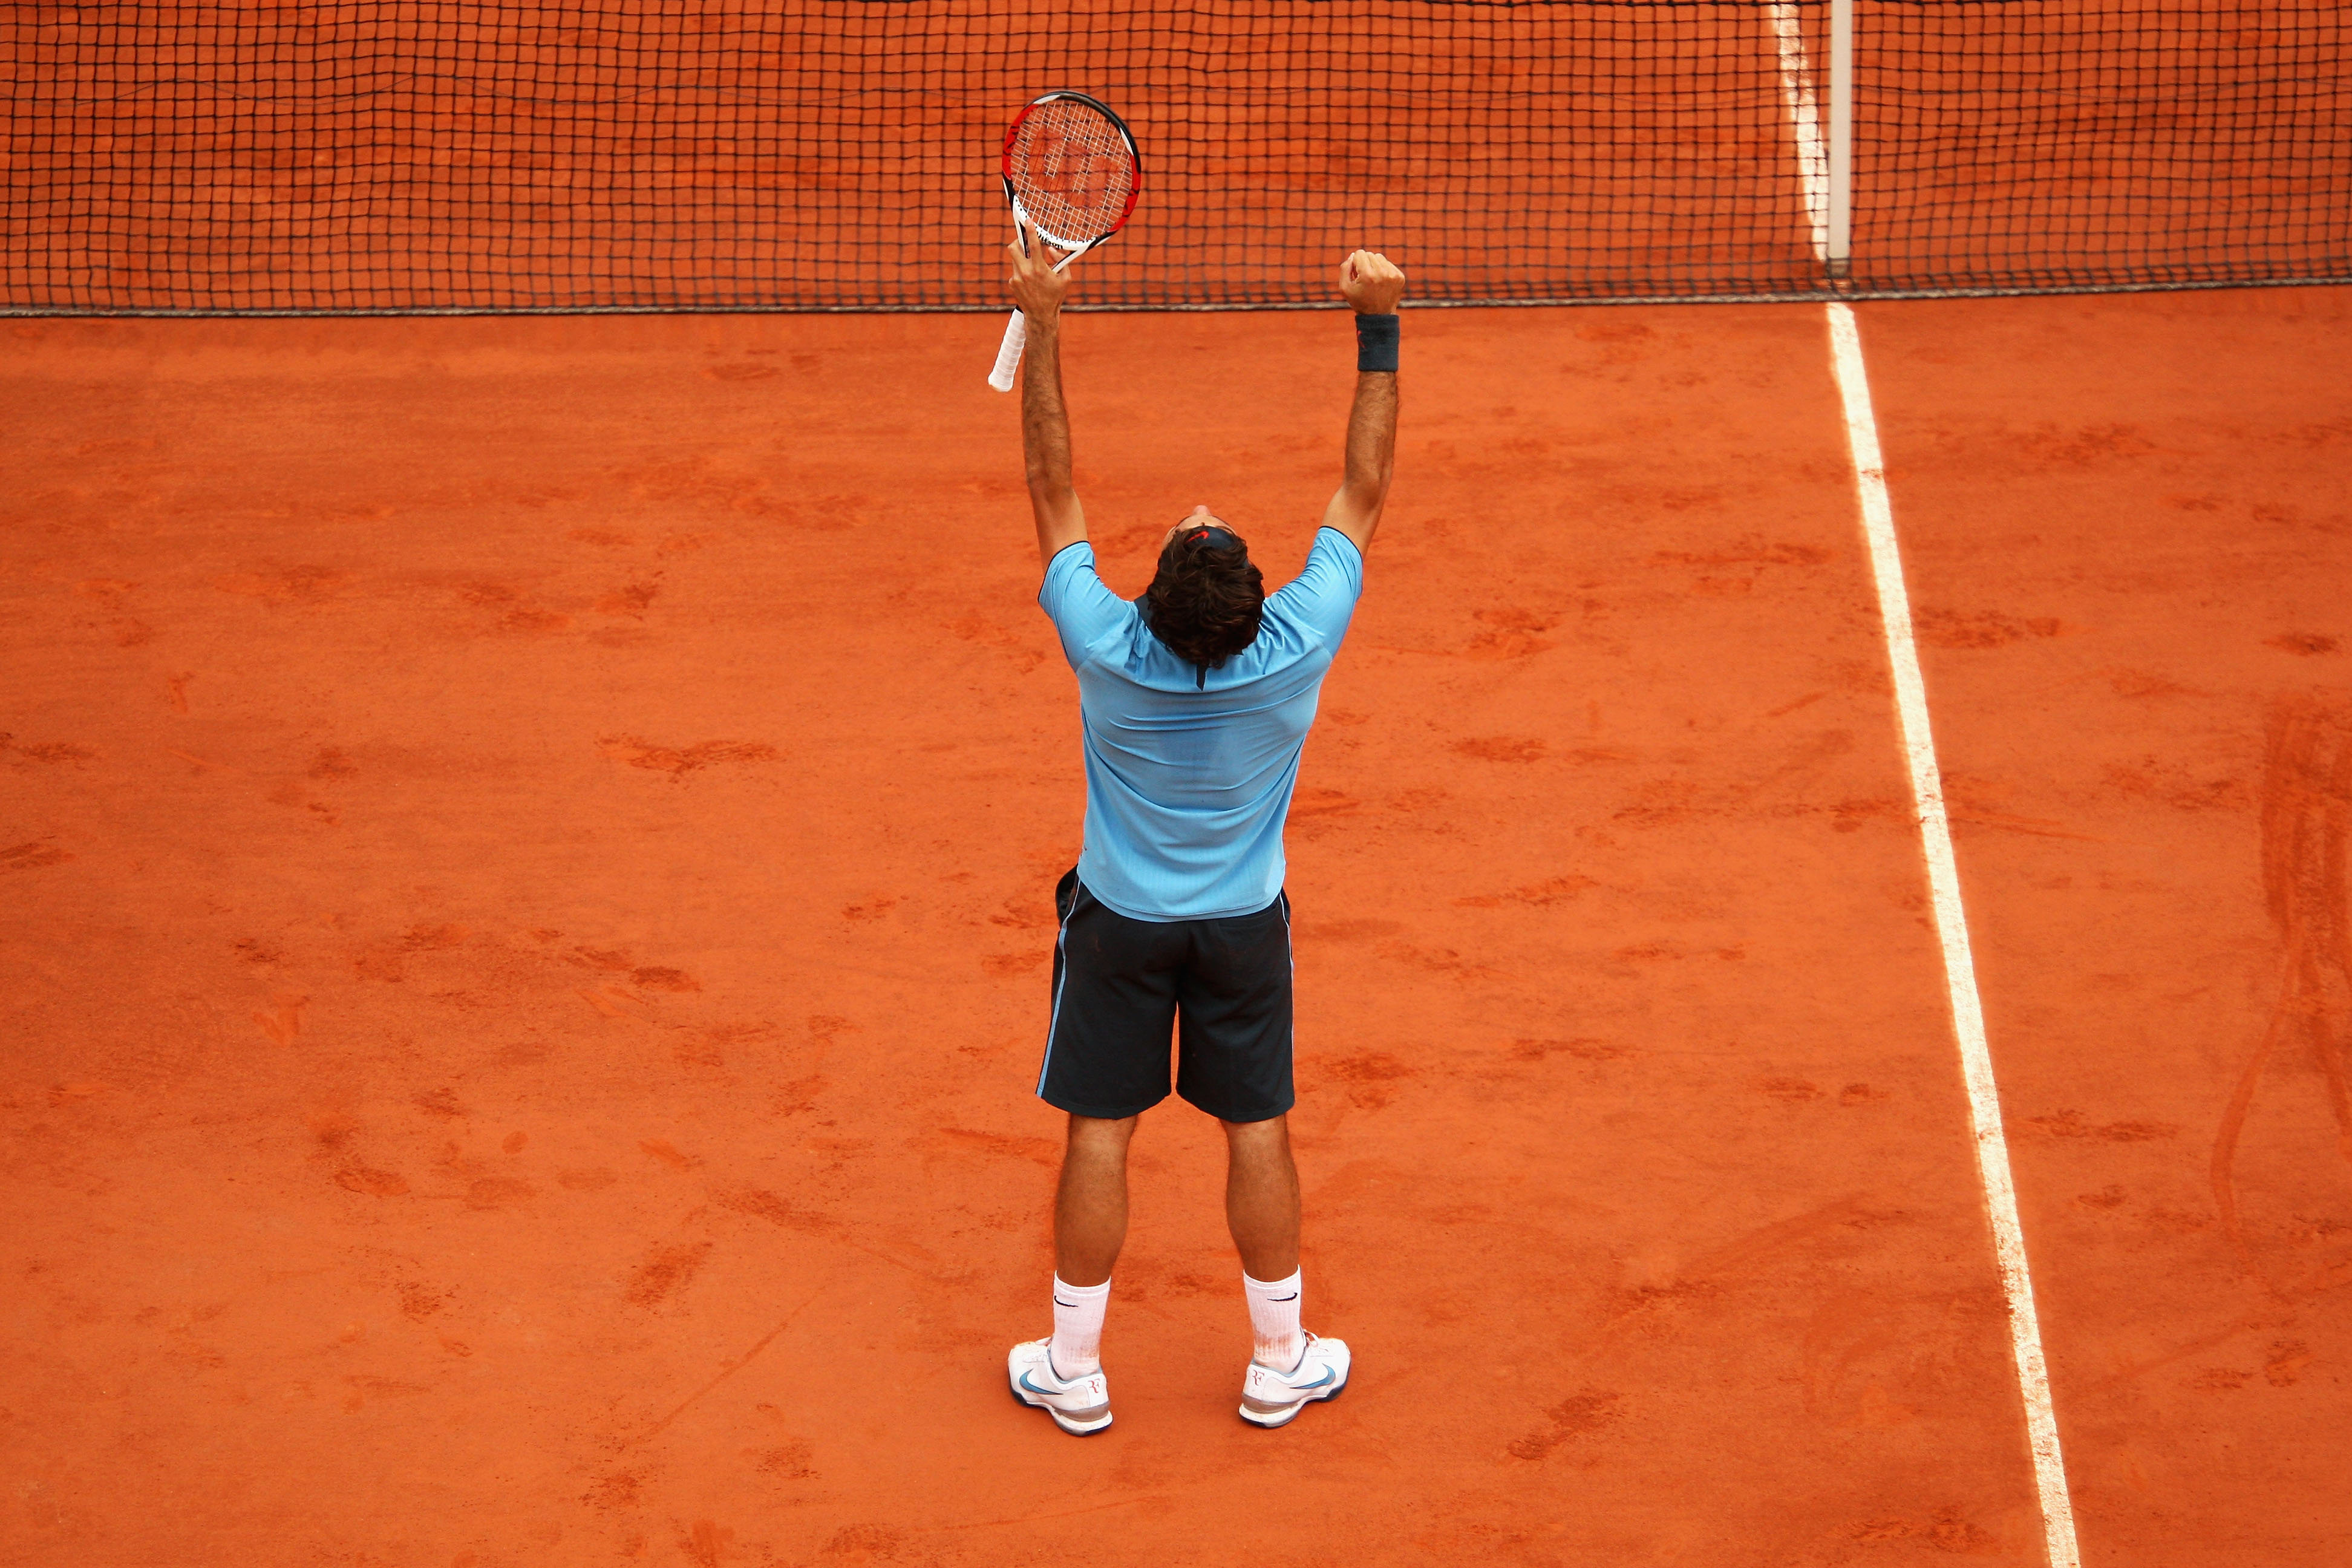 Roger Federer playing the French Open again is special even if he doesn't win